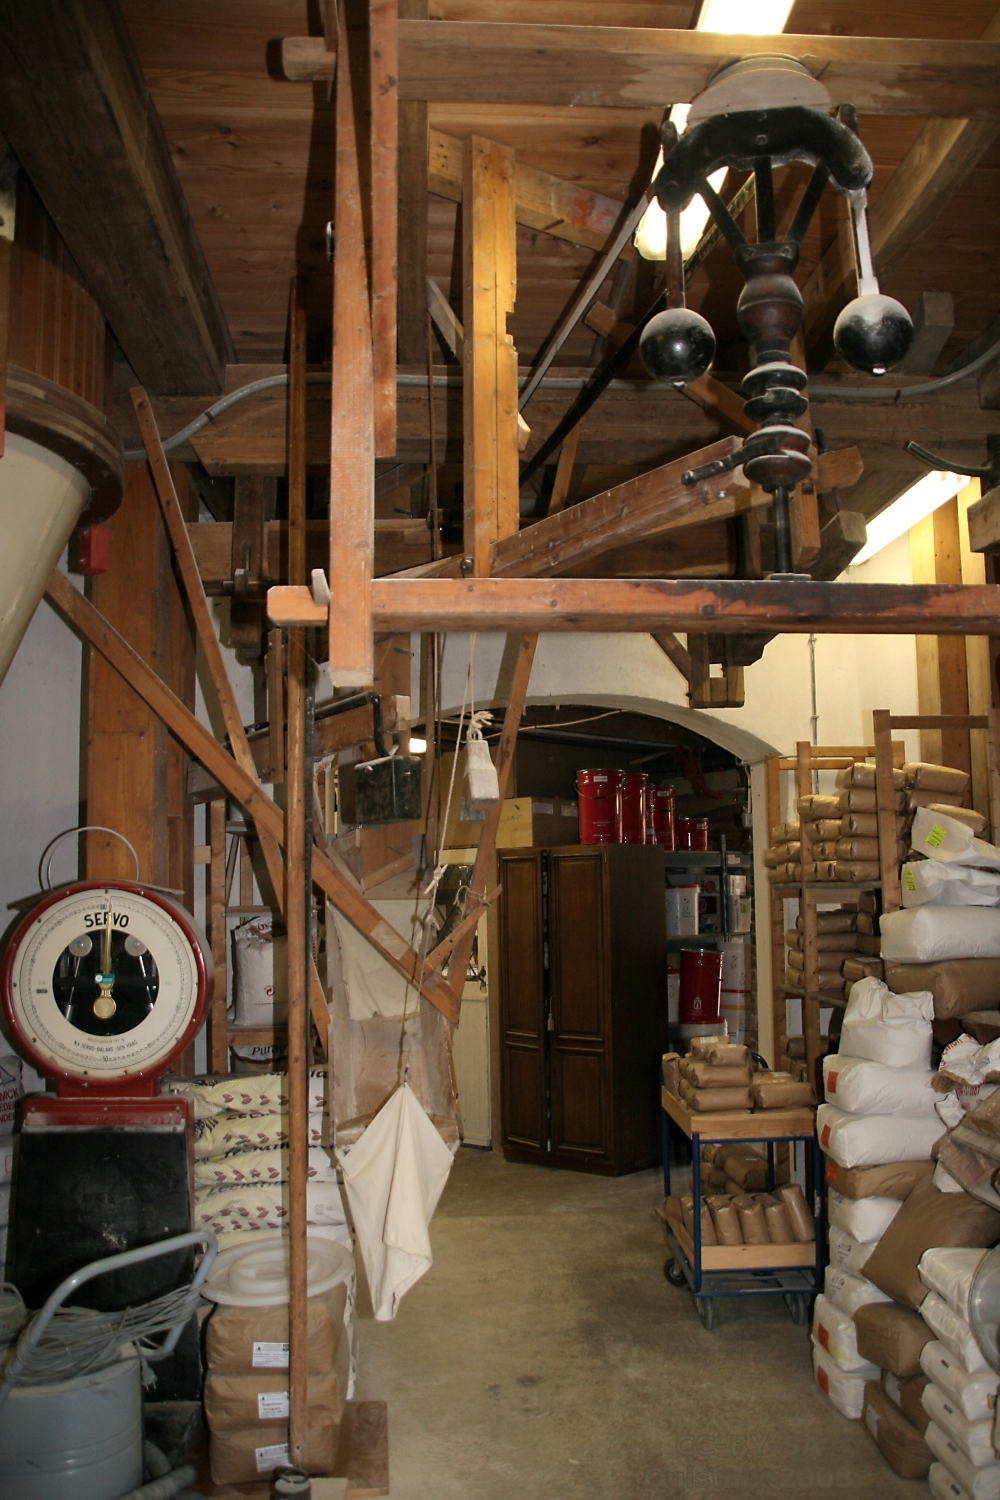 File:Klarenbeek - molen De Hoop - interieur 1.jpg - Wikimedia Commons